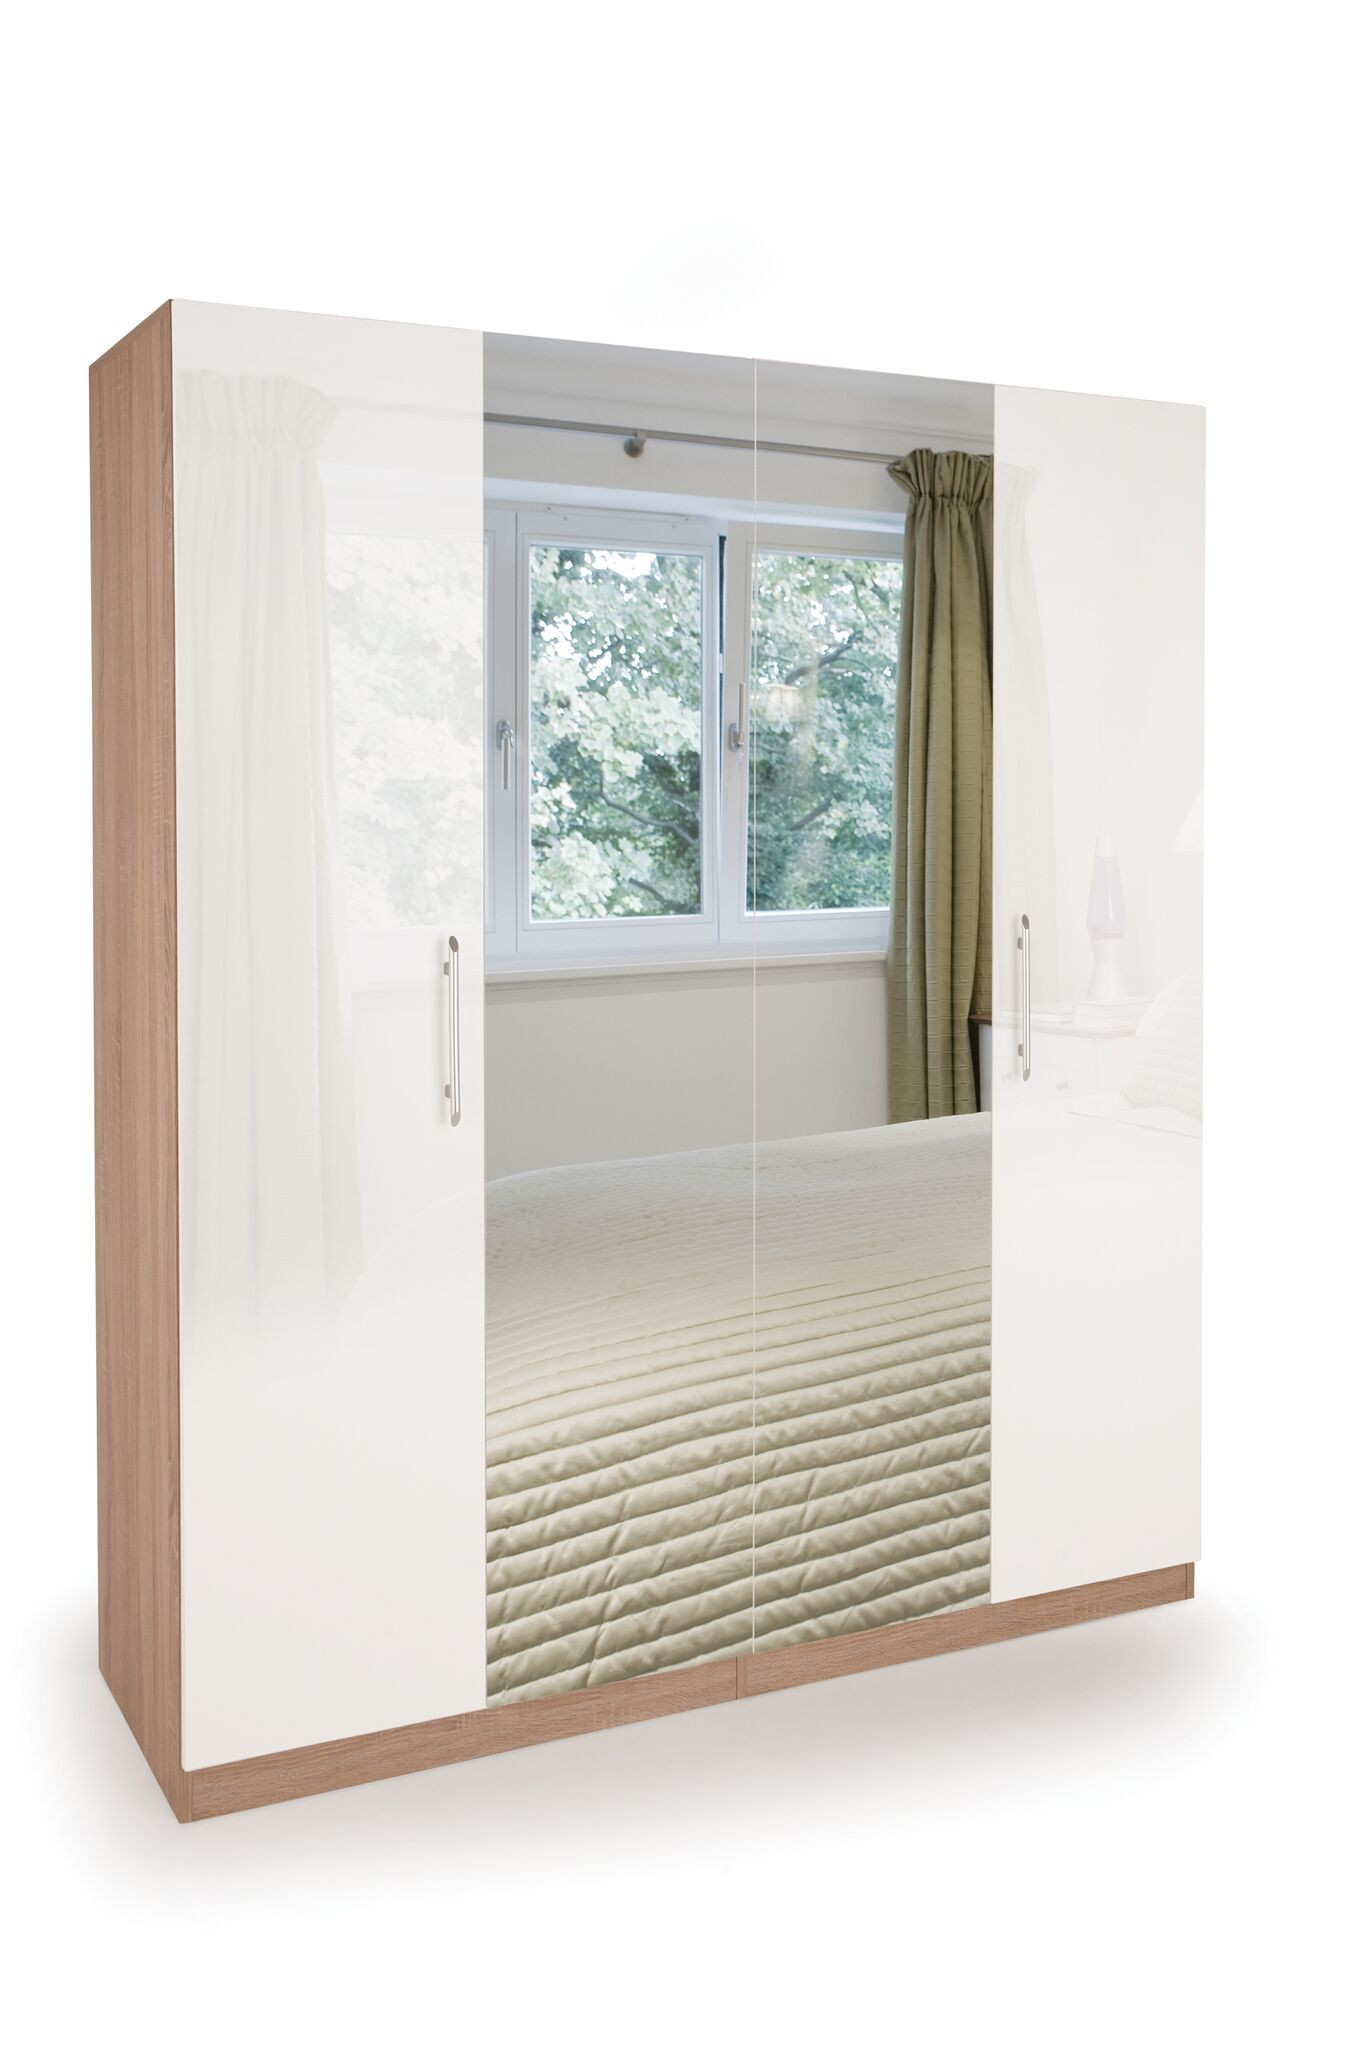 Connect Kew 4 Door Wardrobe with 2 Mirrors